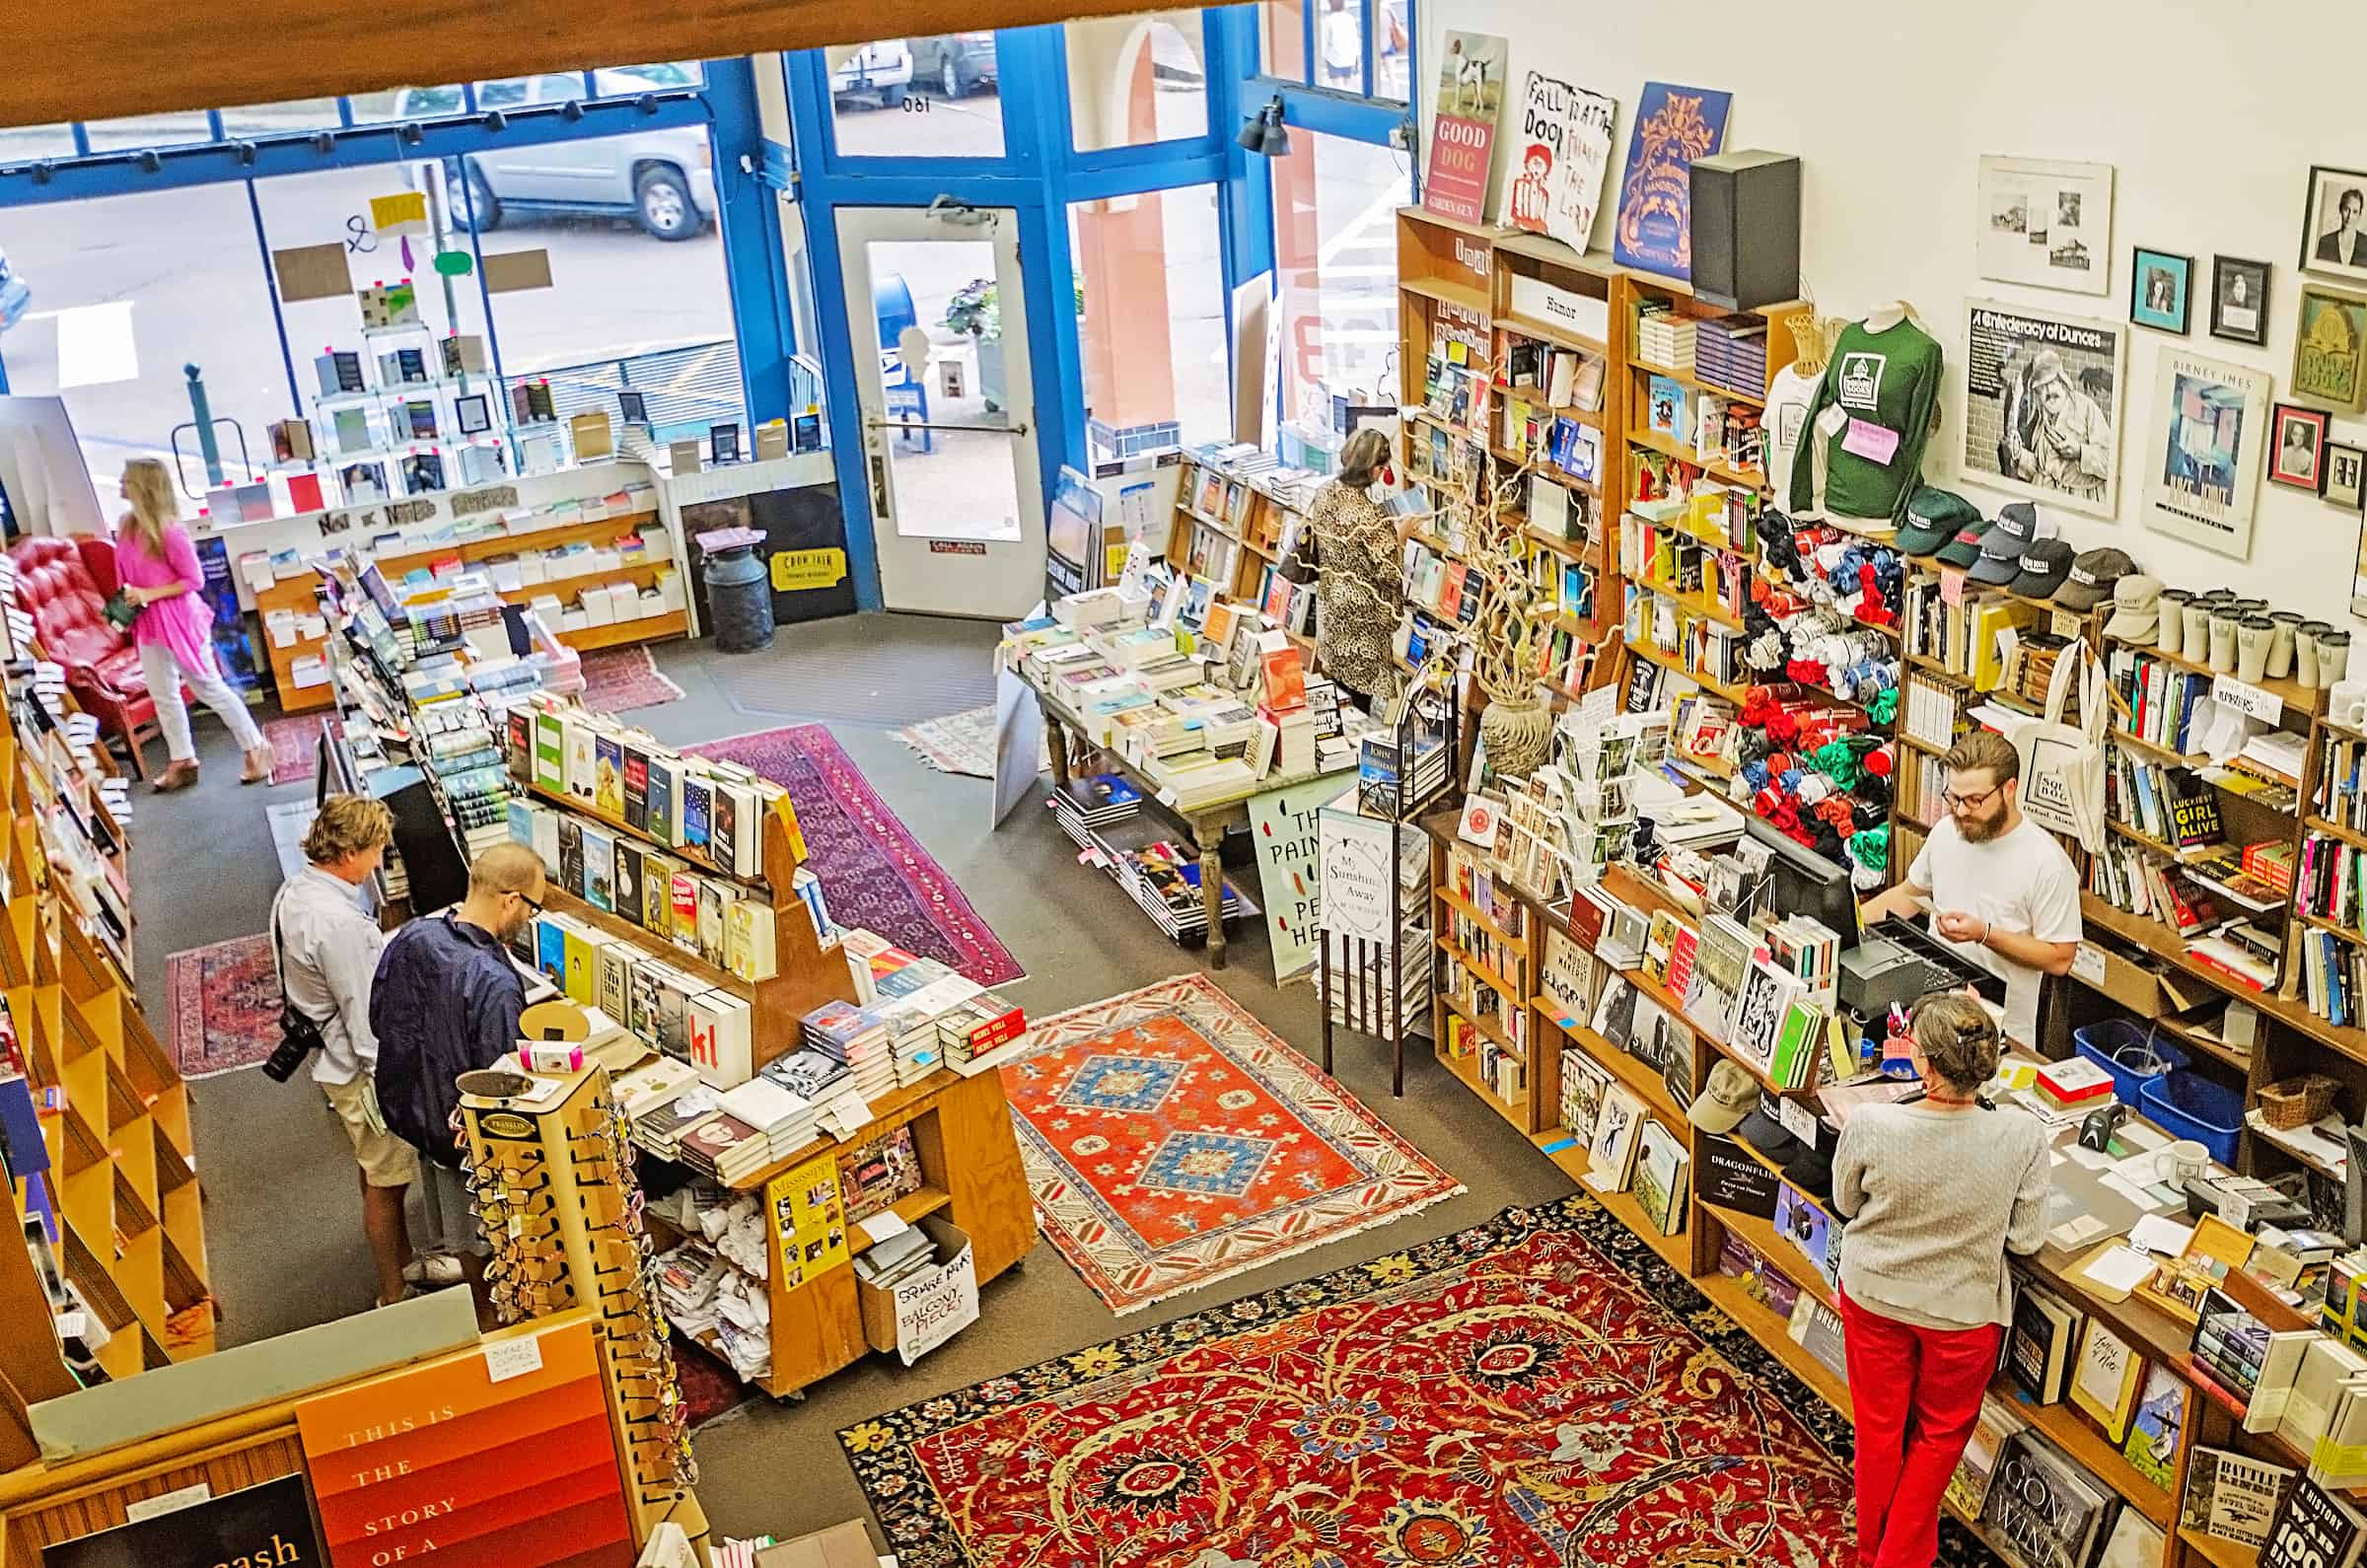 Customers browse the book selections at Square Books bookstore in Oxford Mississippi